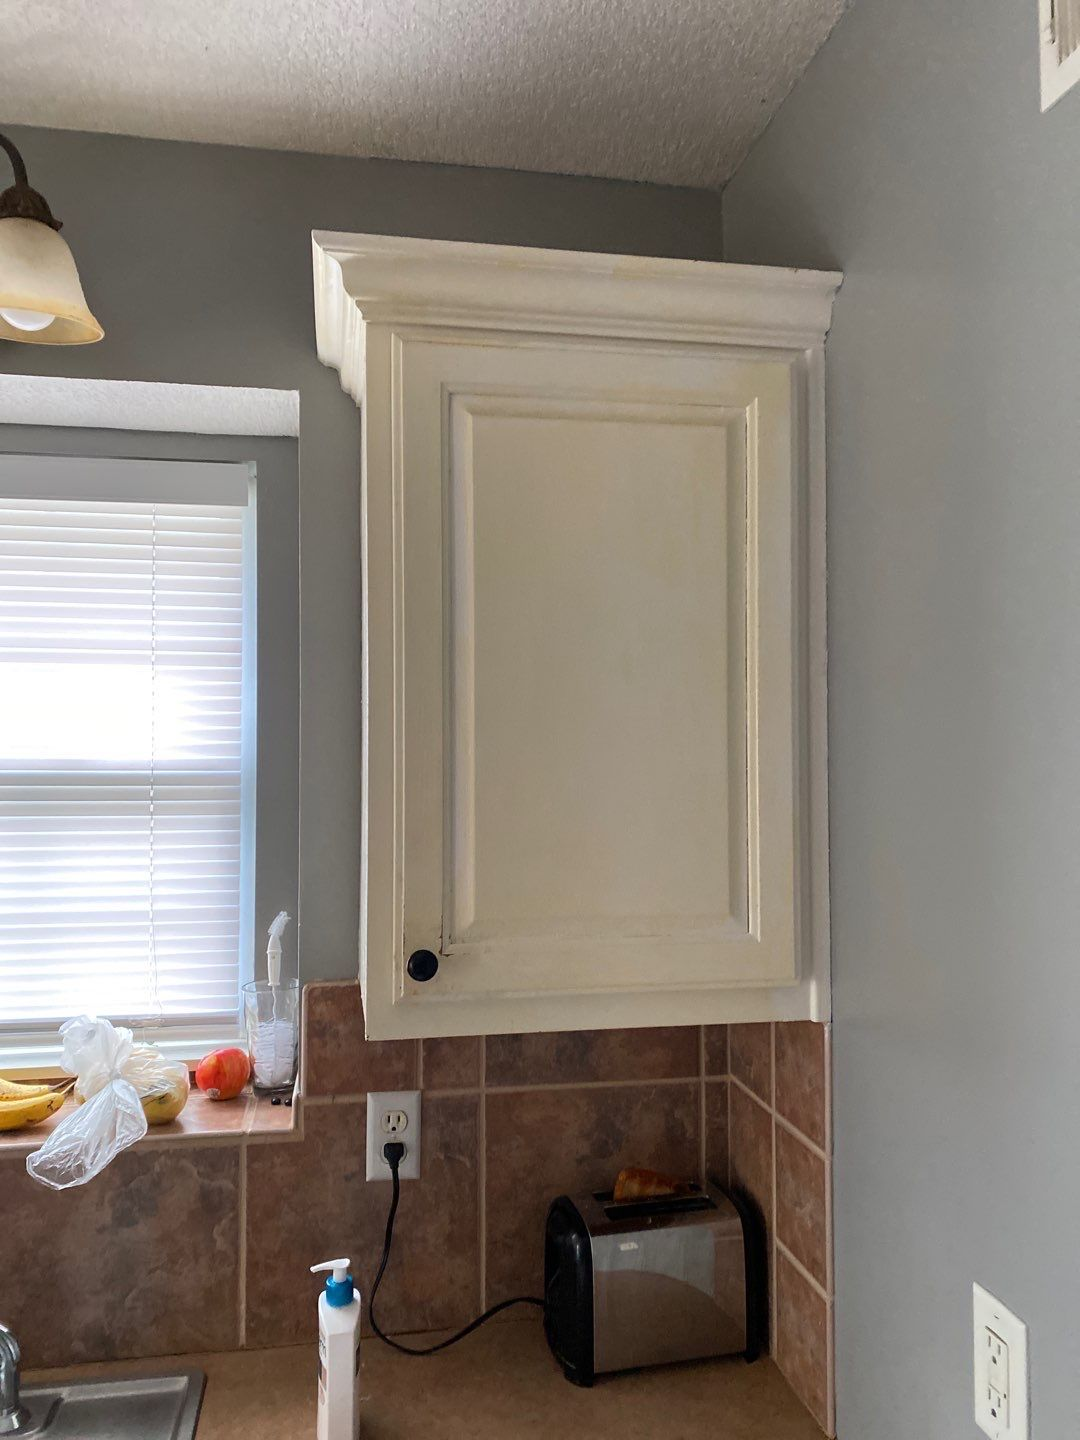 3 Mar 16 2020 01 34pm j94P - Why it's expensive to paint cabinets - Overland Park